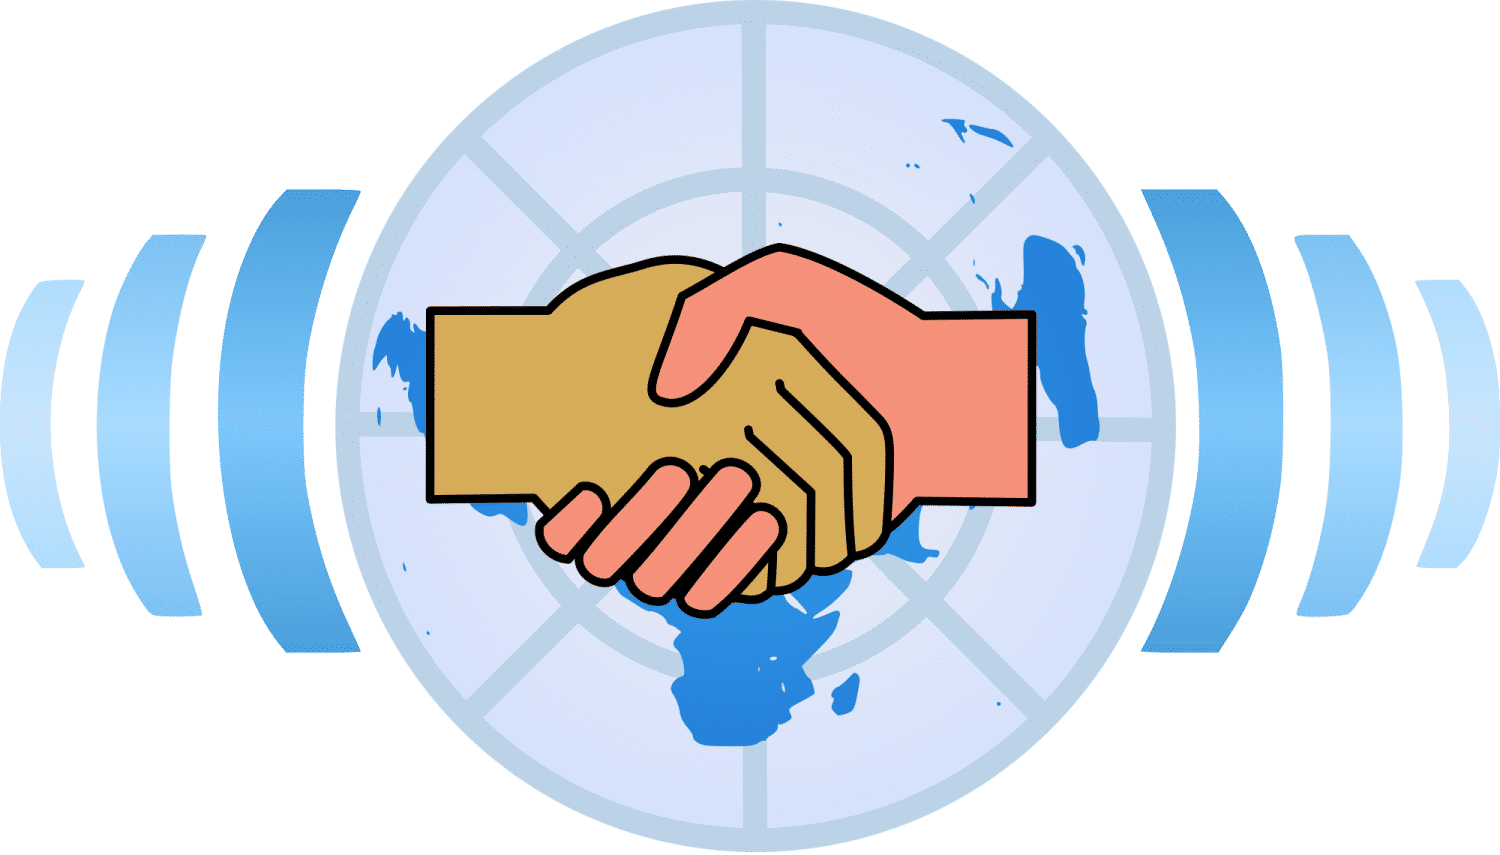 Handshake clipart collaboration. Are you using the